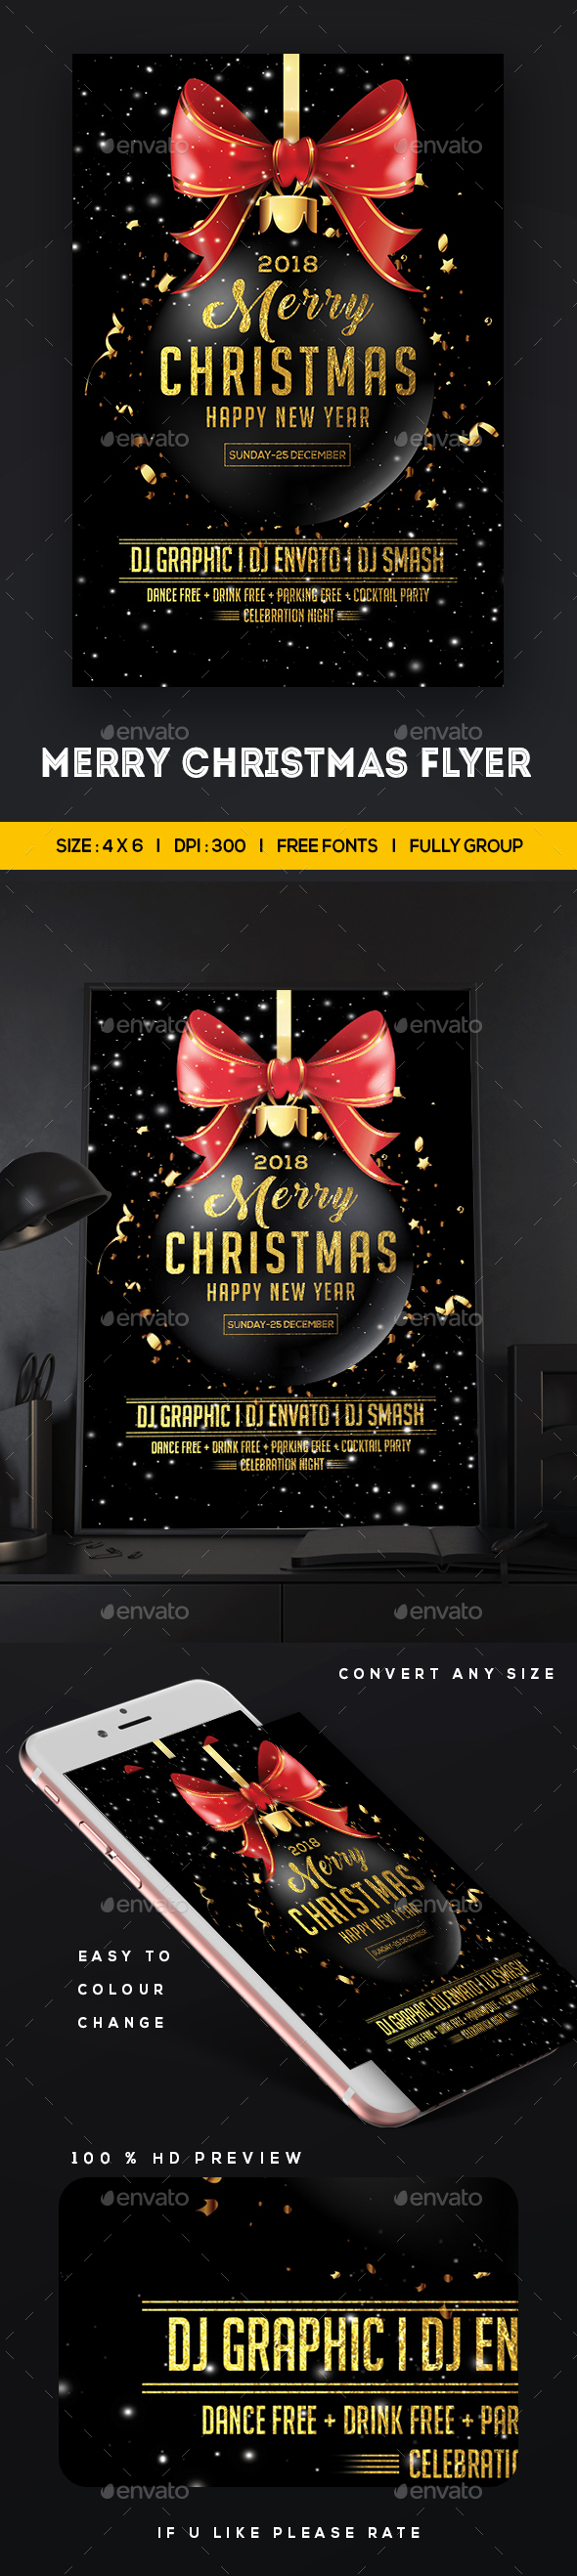 GraphicRiver Merry Christmas Flyer 20950842